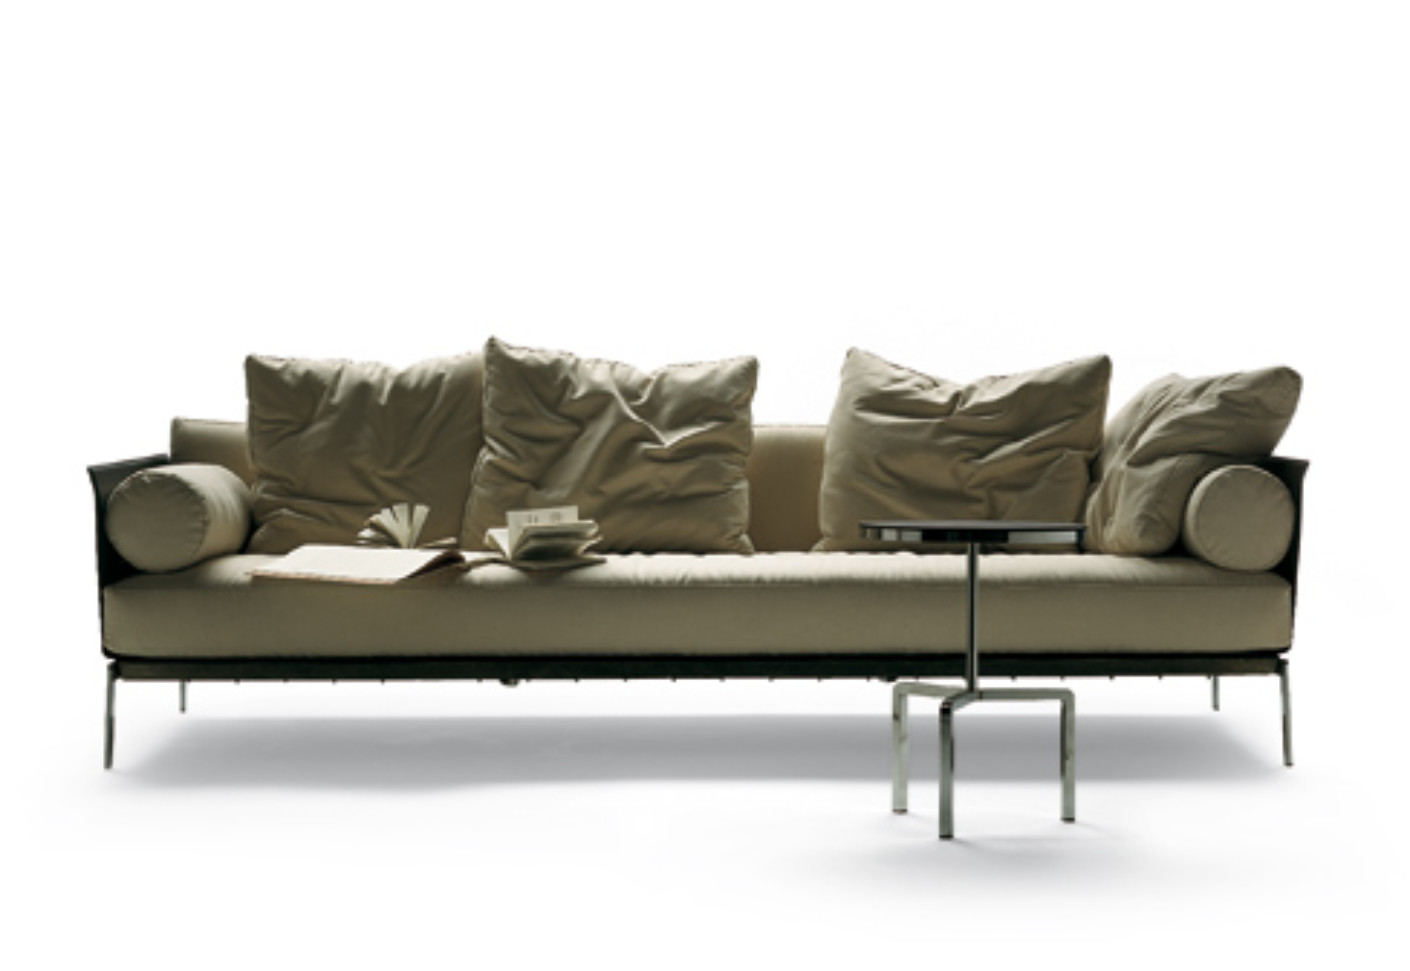 happy hour sofaflexform | stylepark